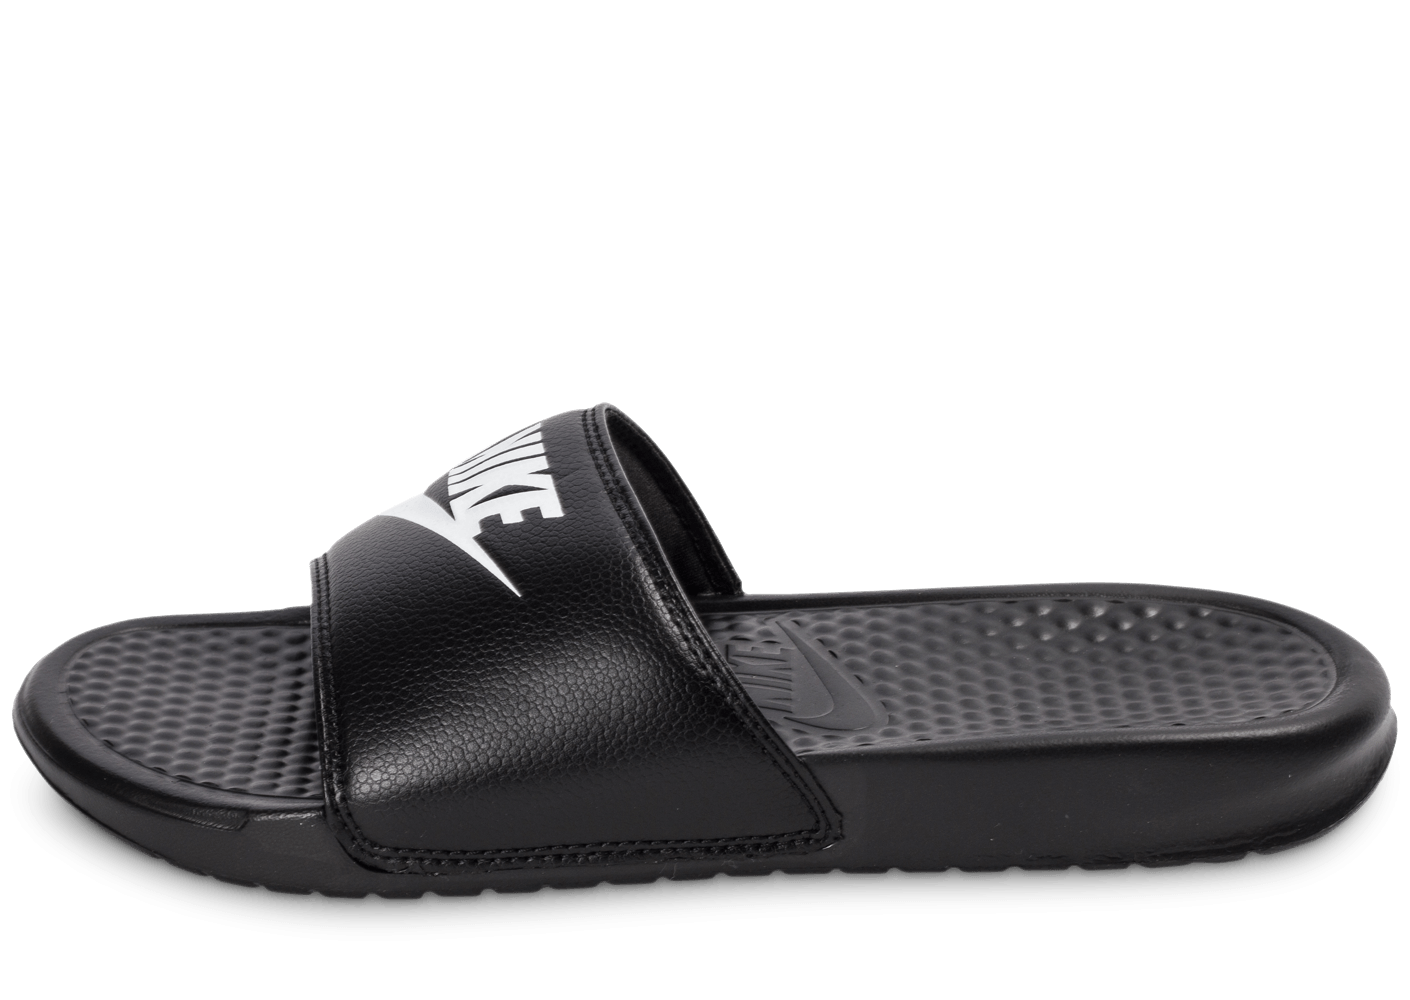 Nike Benassi Just Do It noire